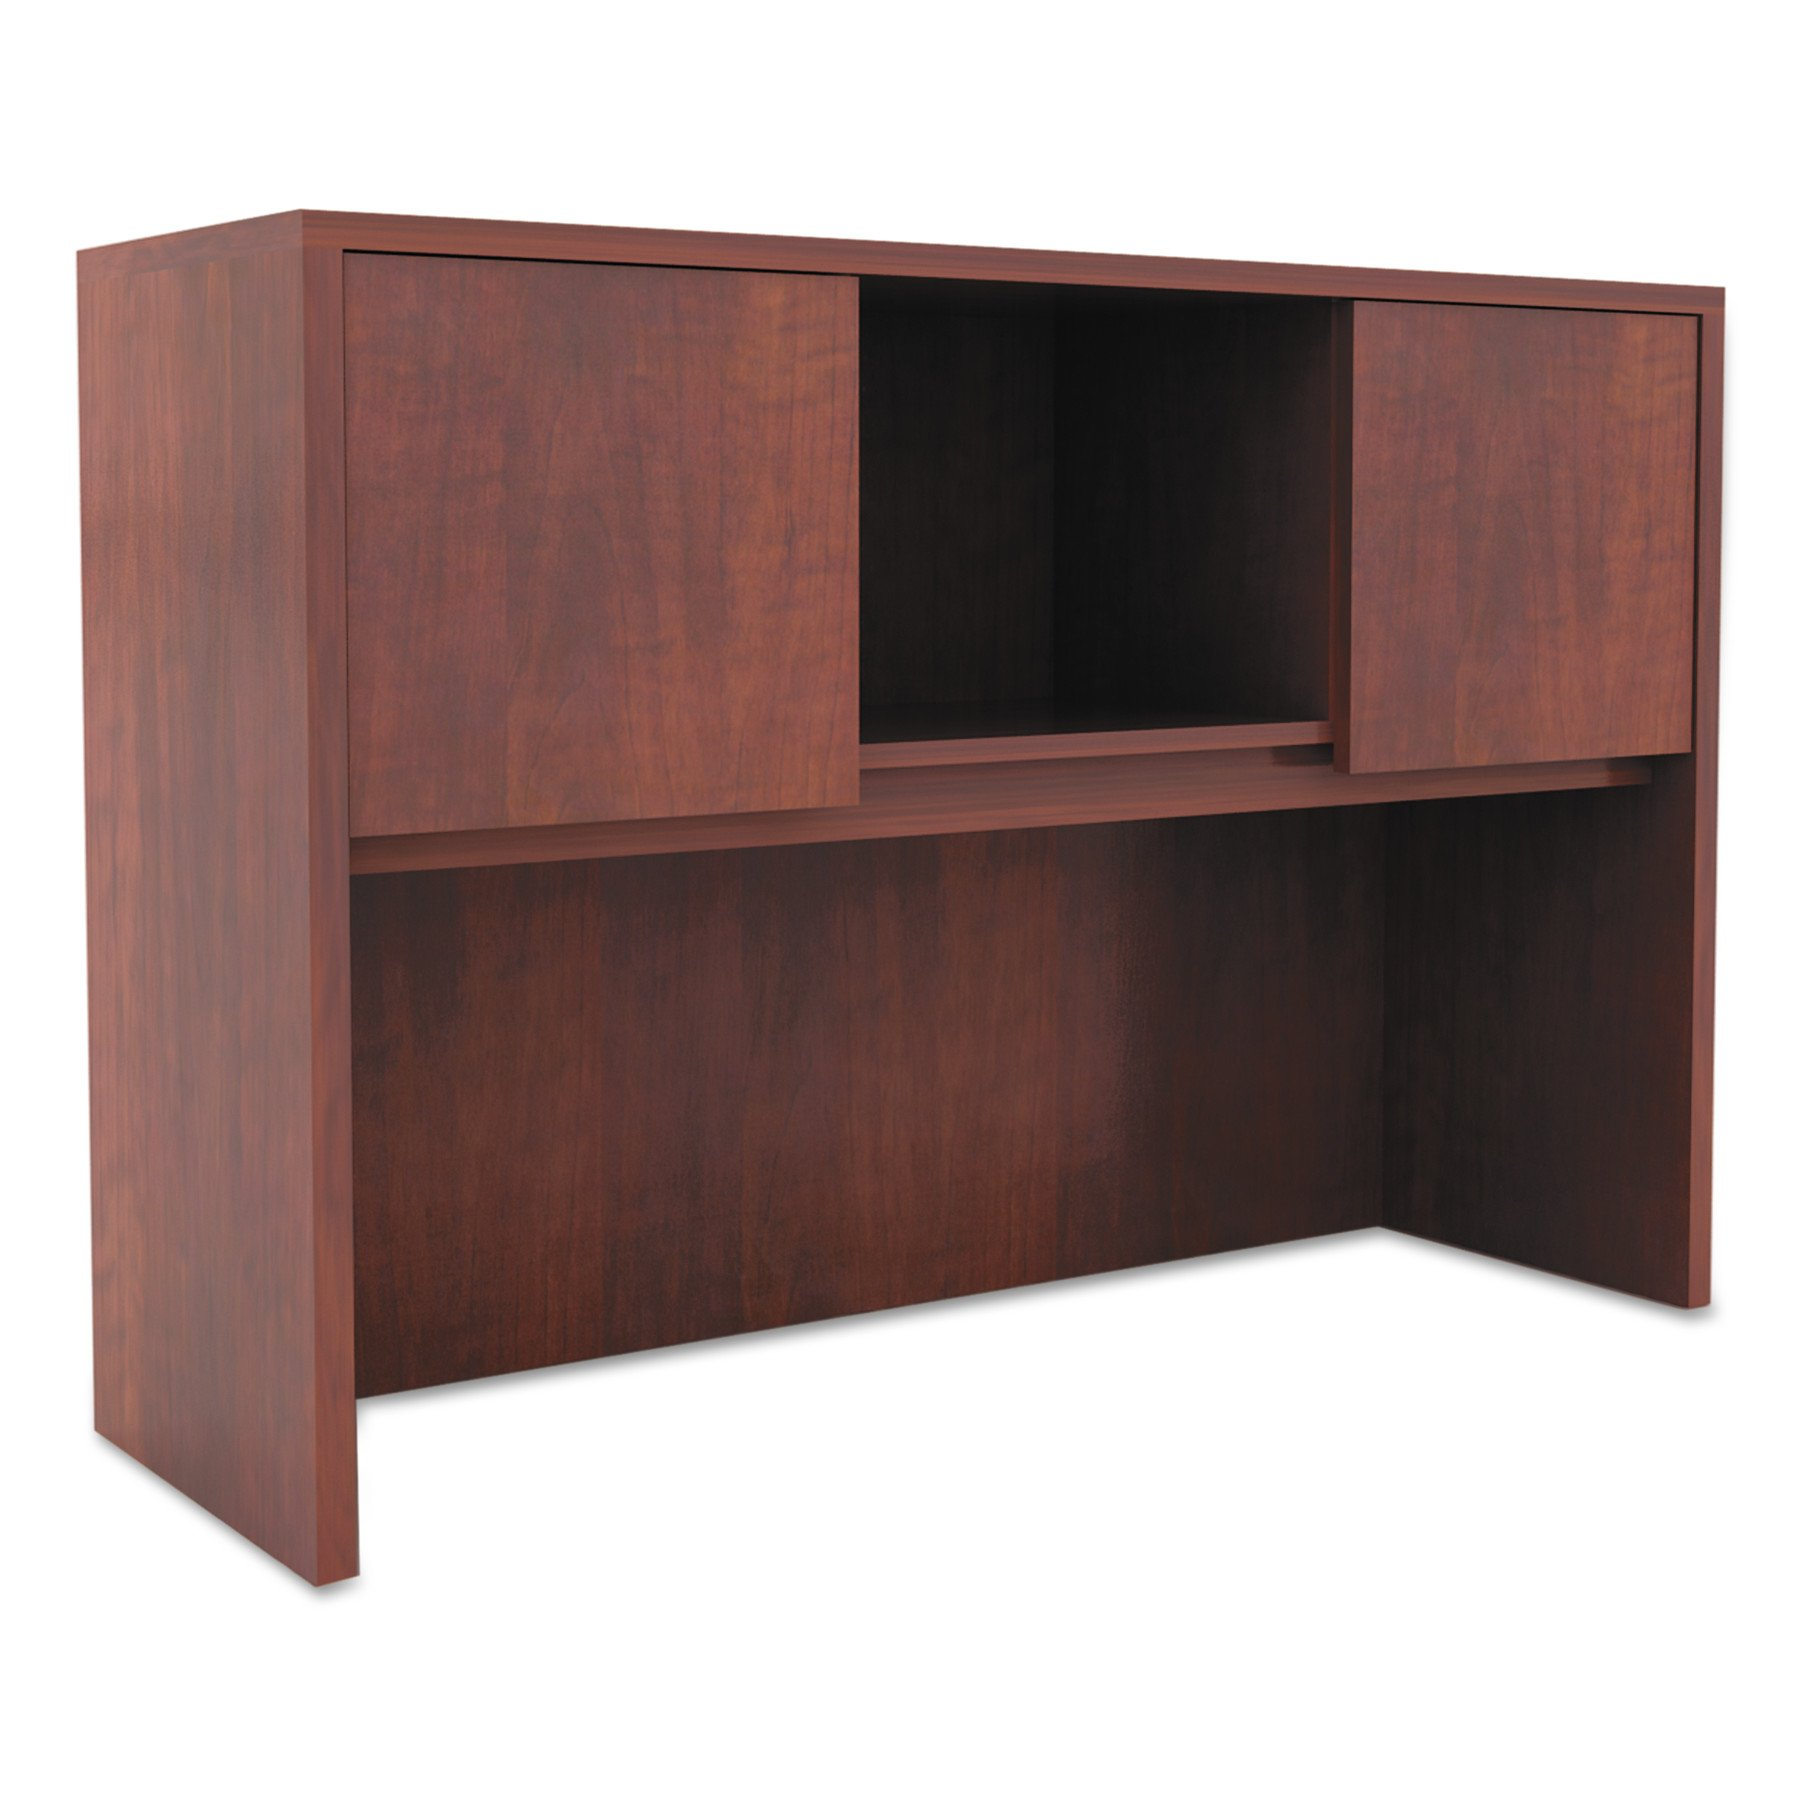 Alera ALEVA284815MC Valencia Series Hutch with Doors, 47w x 15d x 35 1/2h, Medium Cherry by Alera